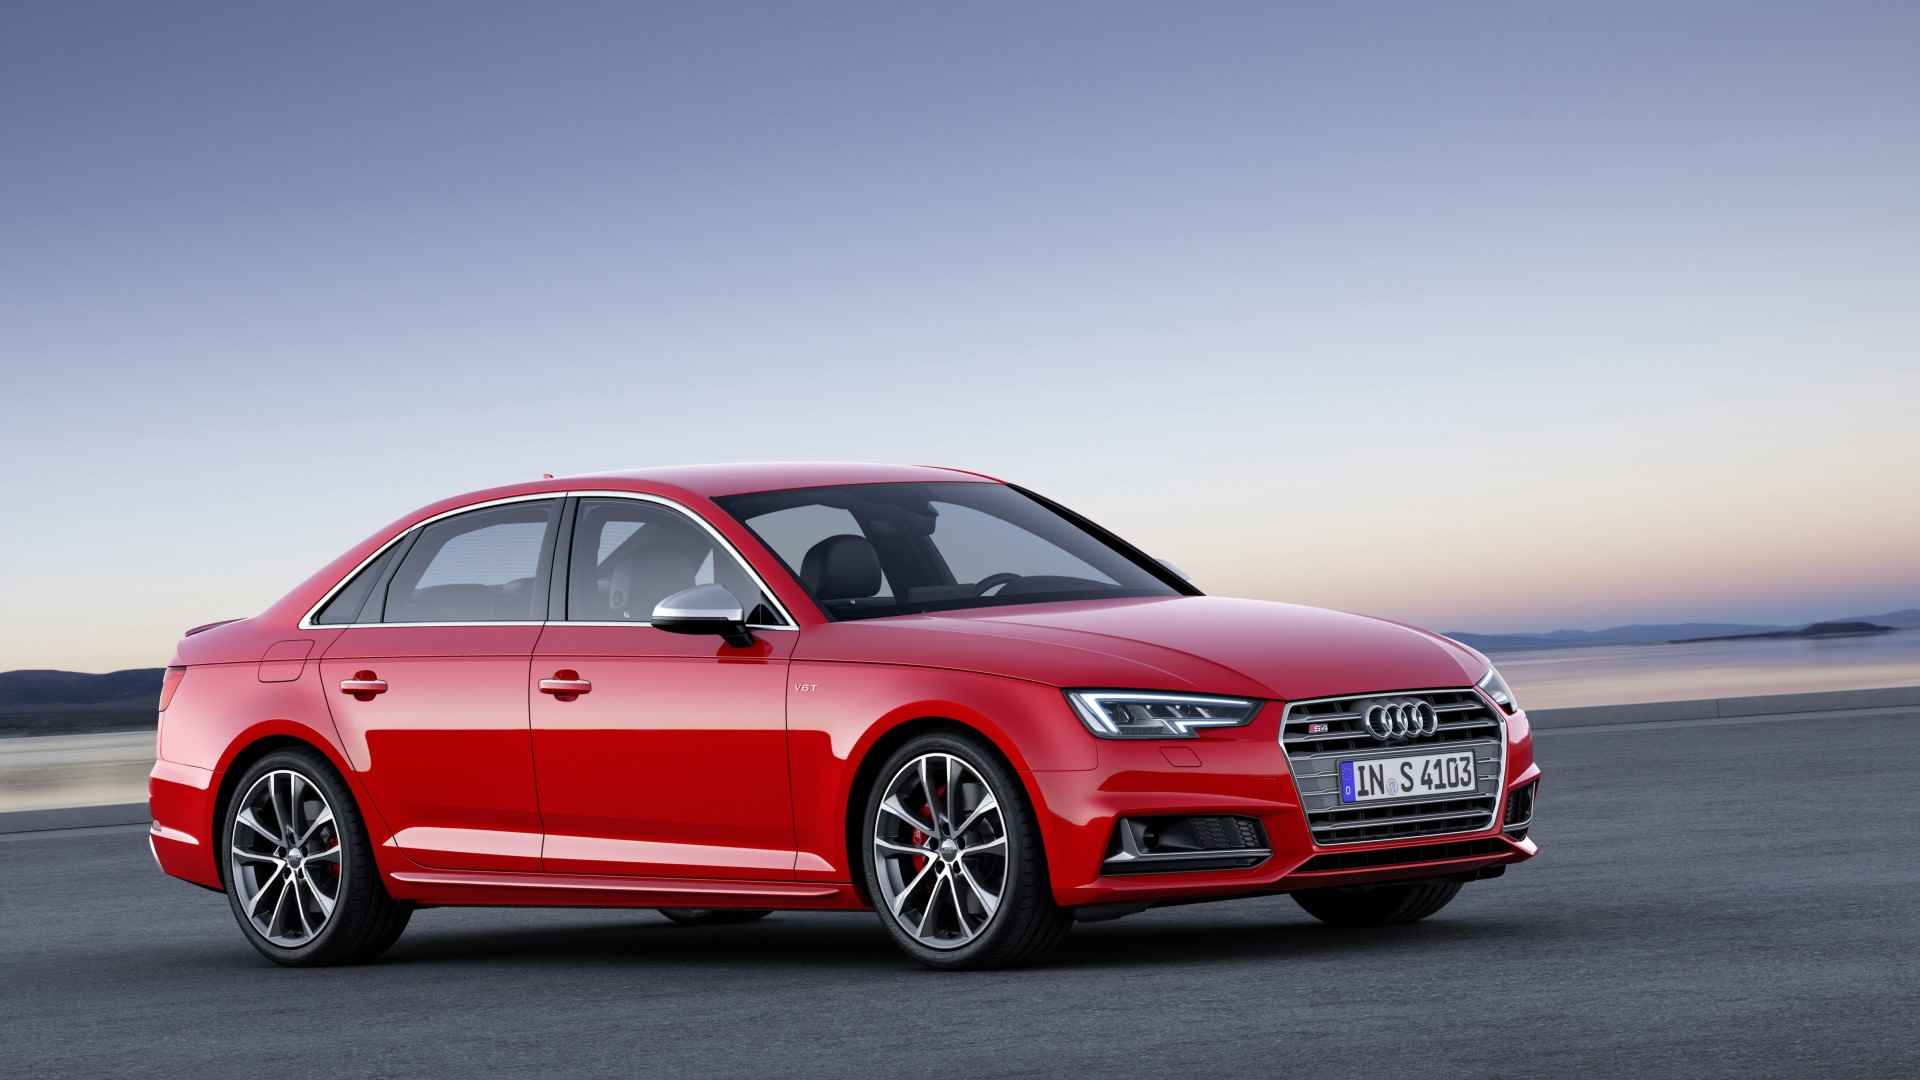 nowe audi s4 i s4 avant 2016 motoryzacja. Black Bedroom Furniture Sets. Home Design Ideas